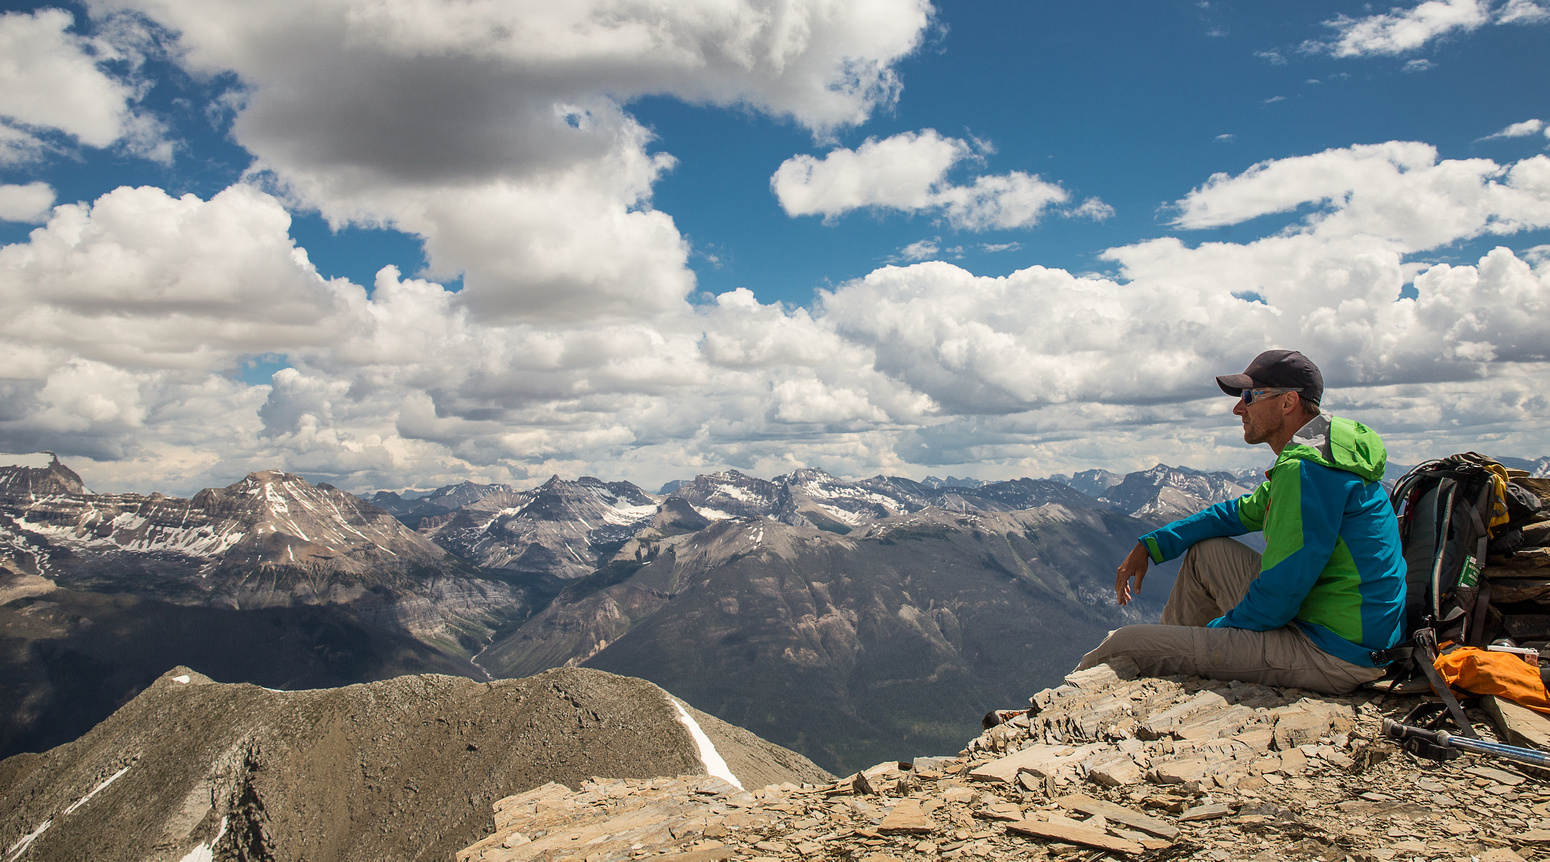 Vern enjoying the views from the summit of Numa Mountain.